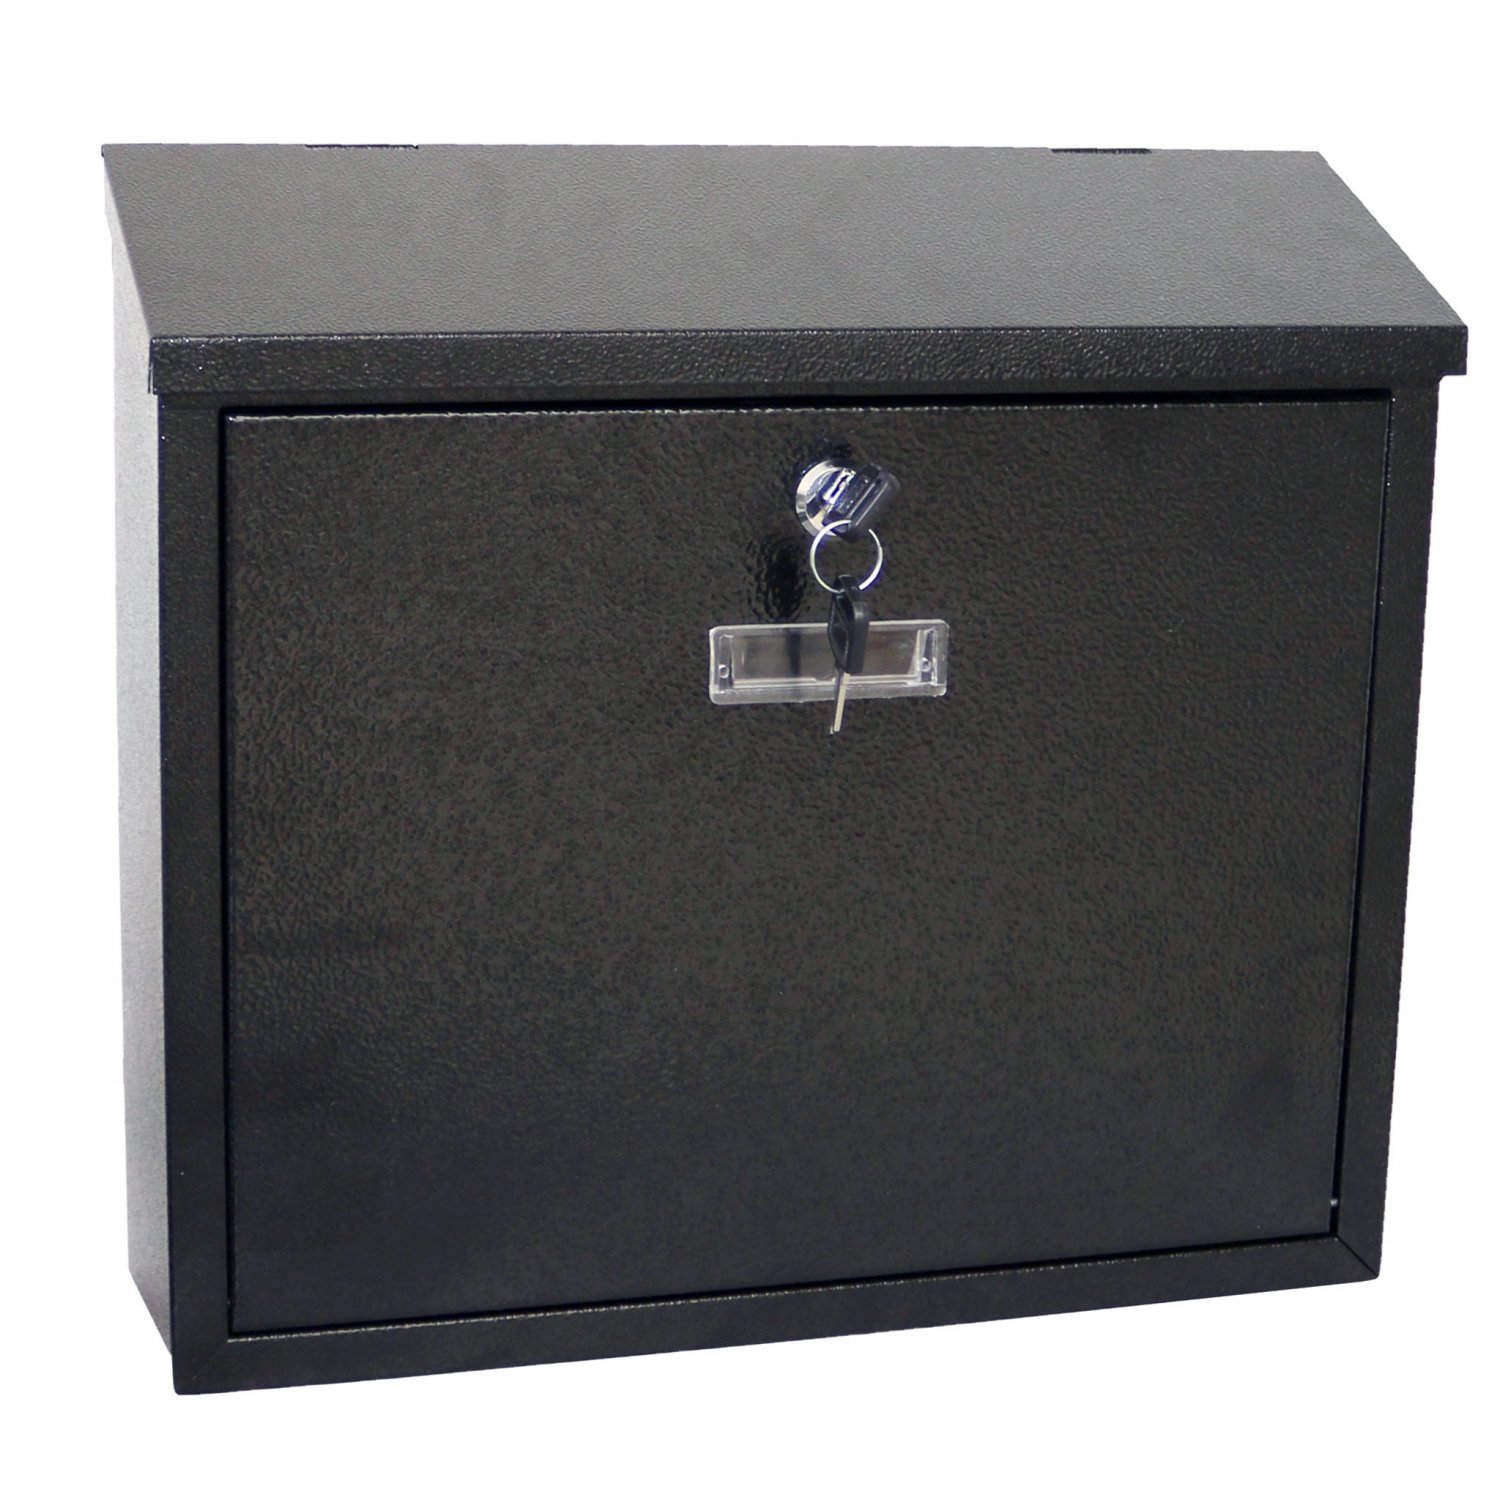 Black Wall Mounted Lockable Waterproof House Mailbox Postbox